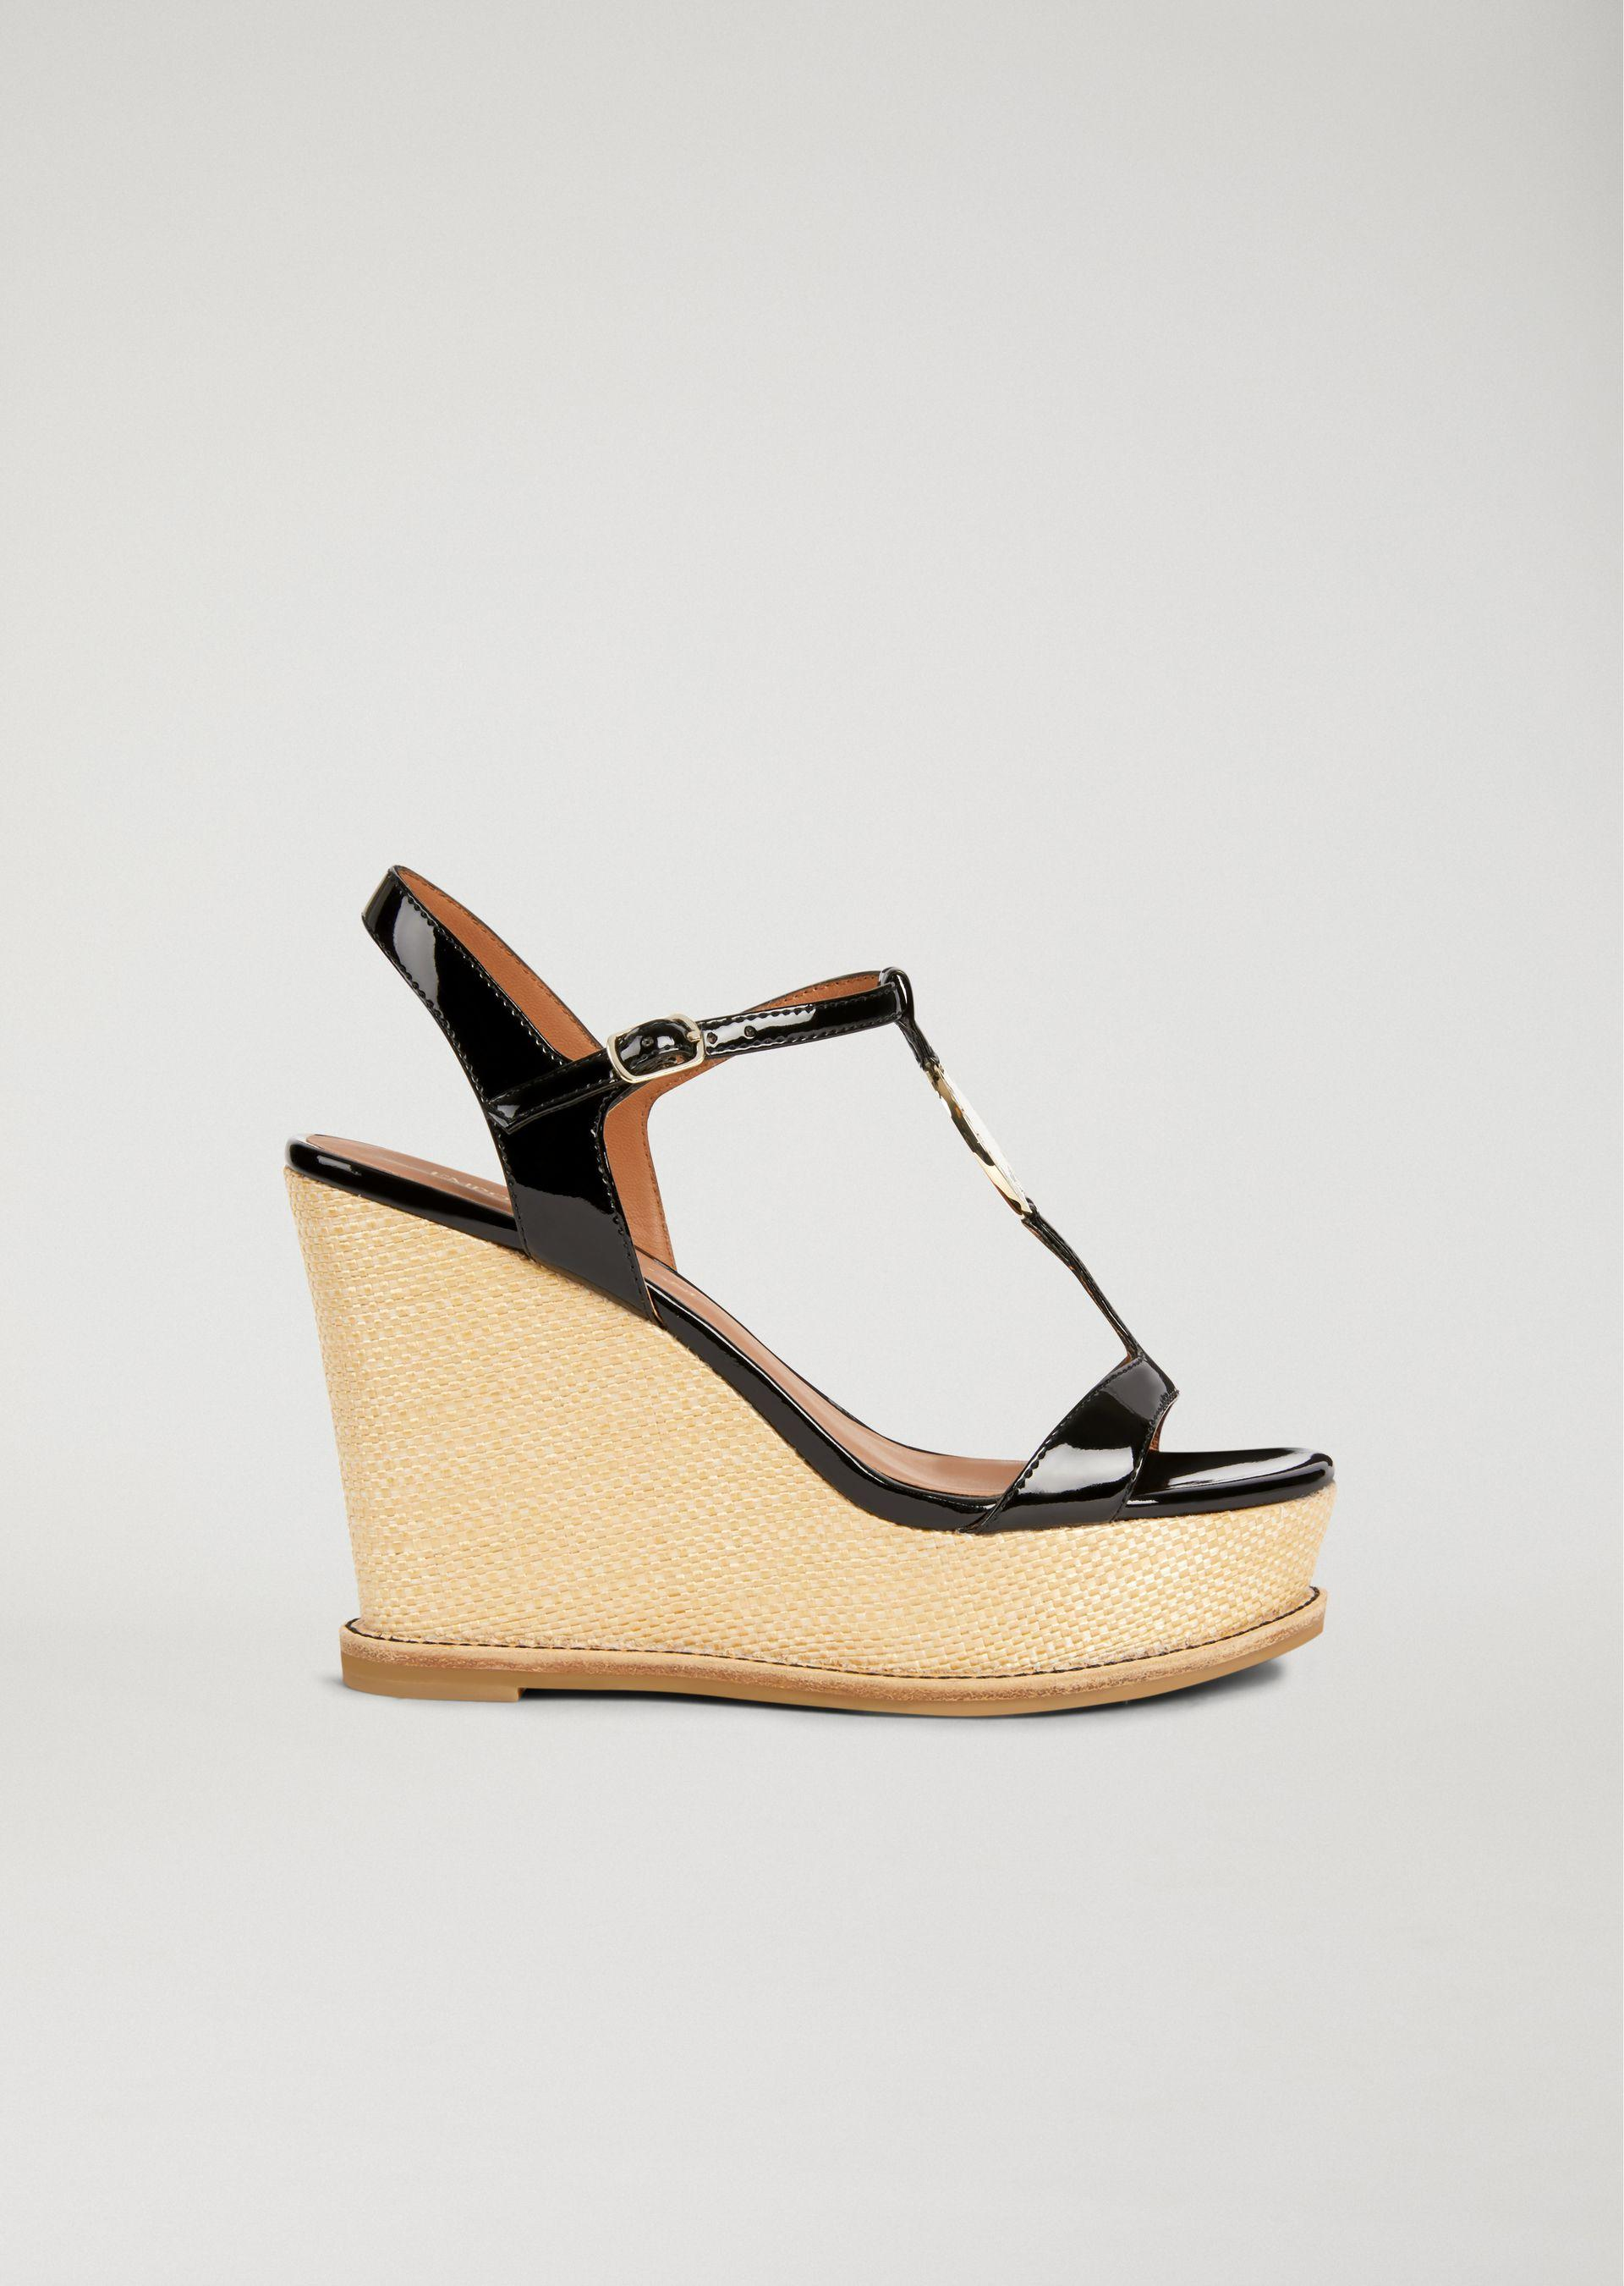 Emporio Armani Wedges - Item 11425926 In Black ; Red ; White